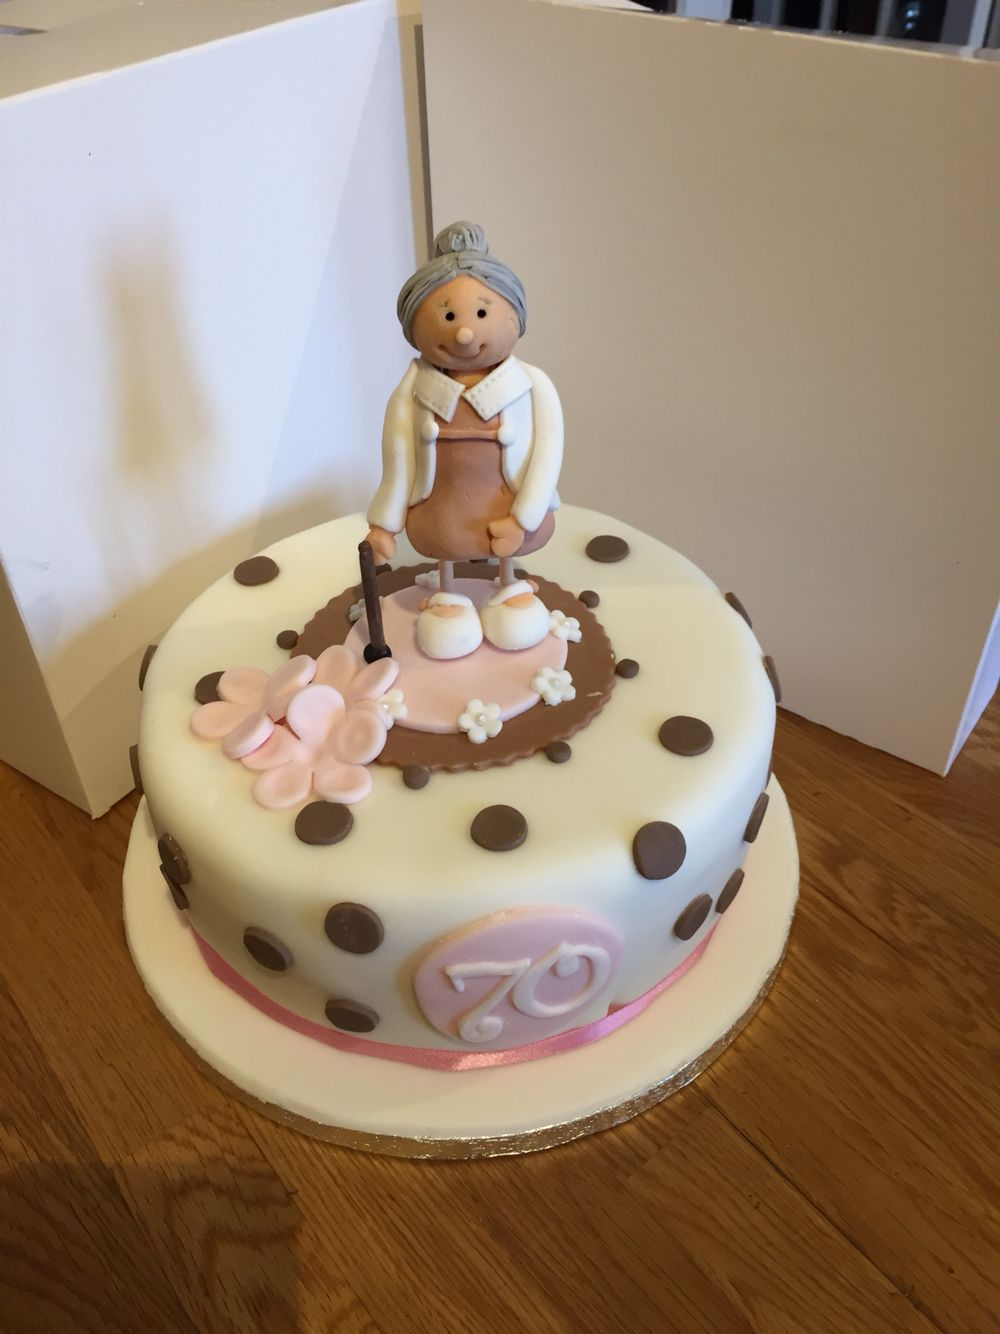 Th Old Lady Cake Cake Ideas Pinterest Lady Cake And Cake - Birthday cakes 70th ladies